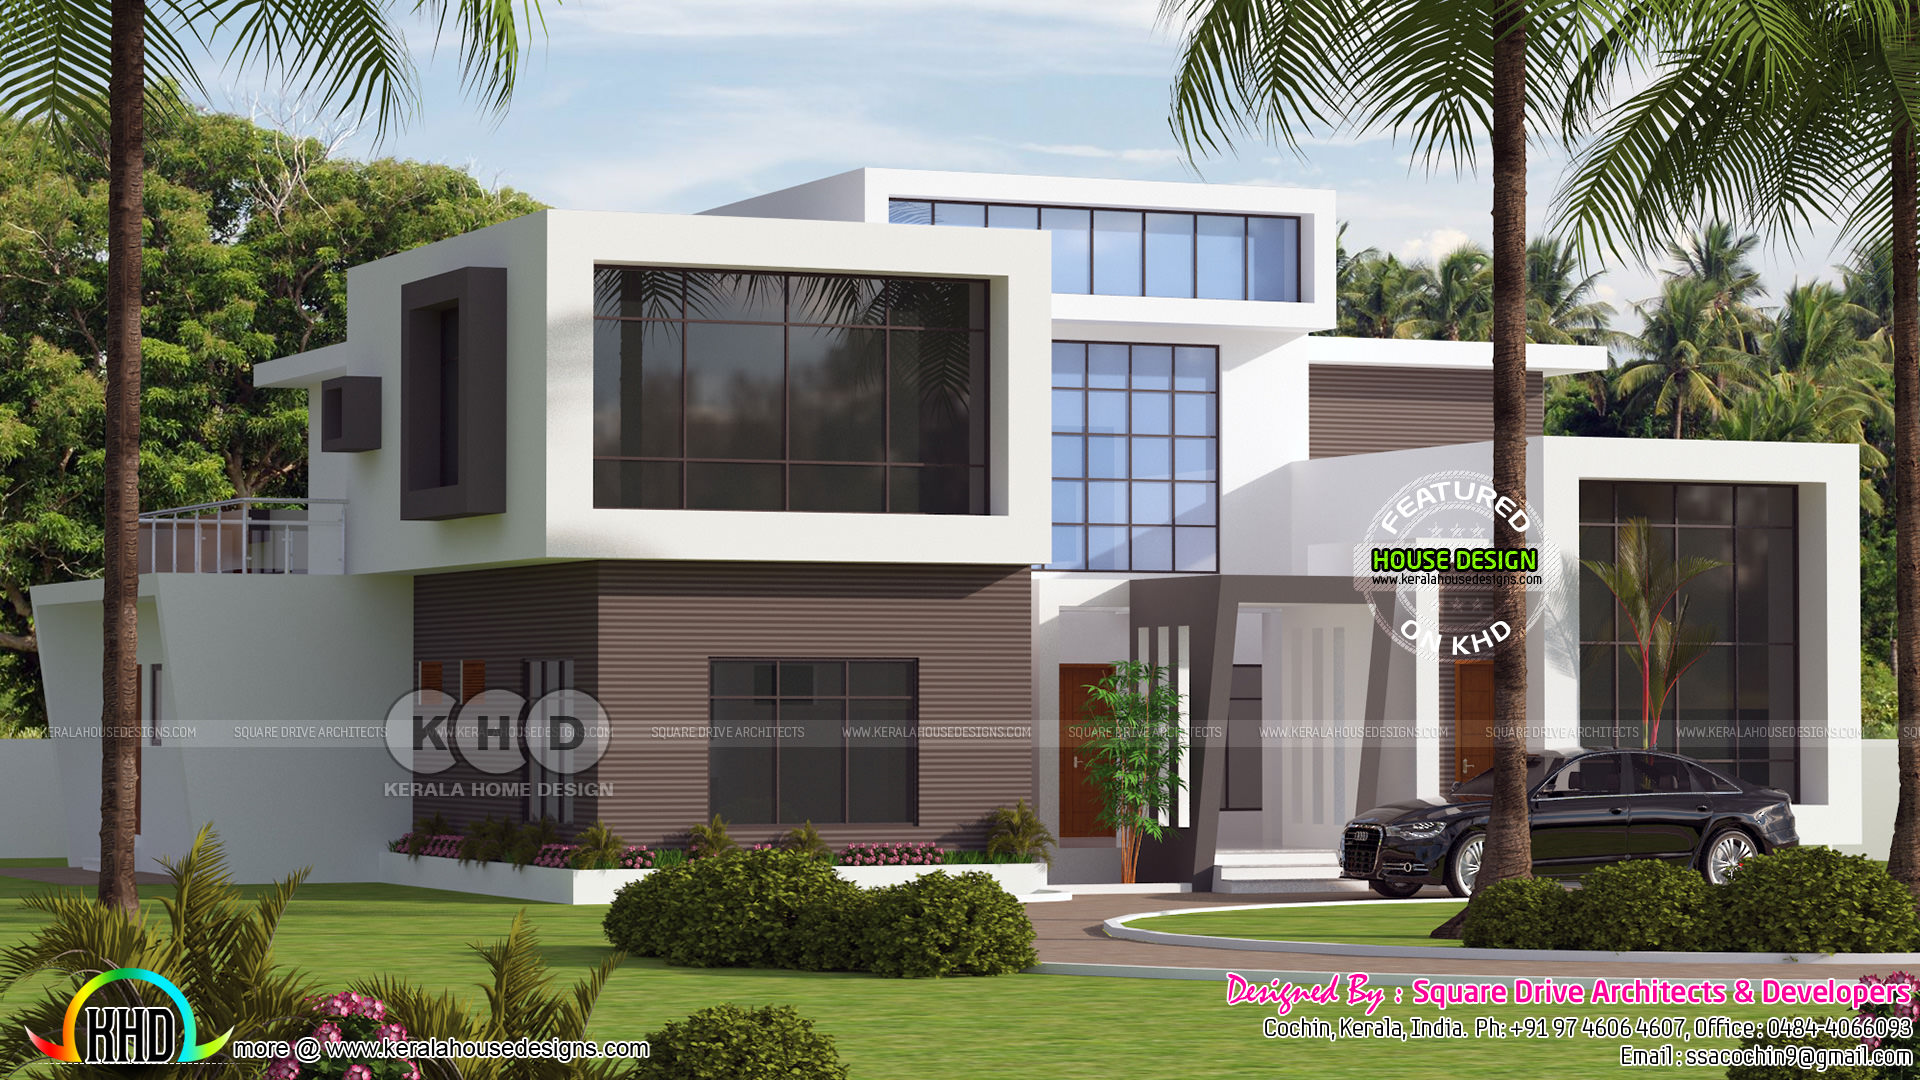 395 Sq M Contemporary Kerala Home Kerala Home Design